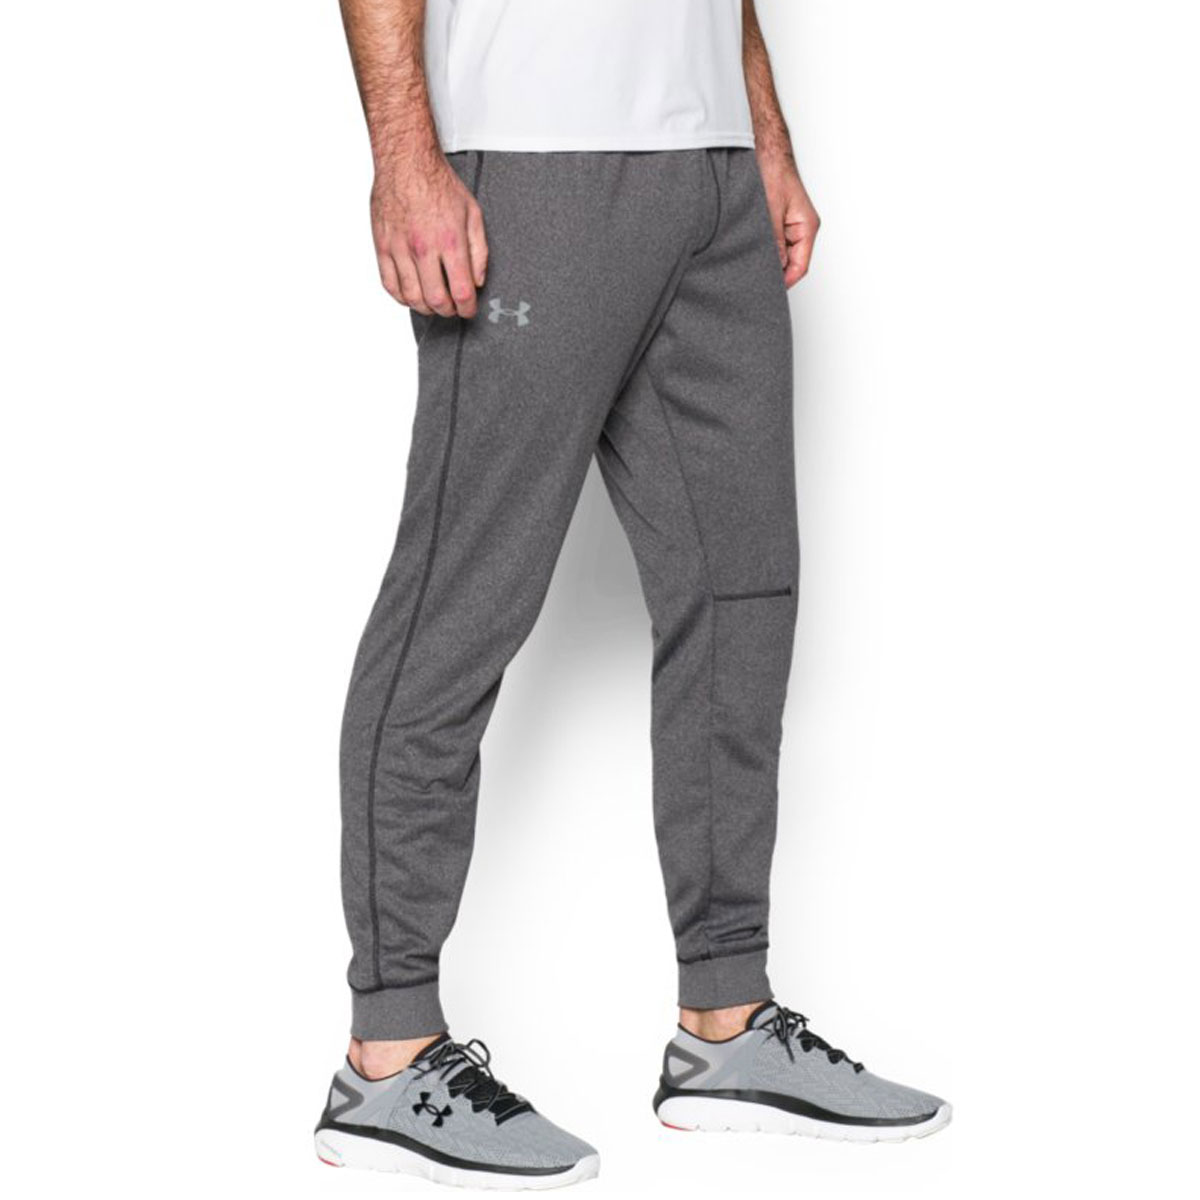 Under Armour Mens Sportstyle Jogger Tapered Skinny Slim Fit Jogging ... 157da511b02a